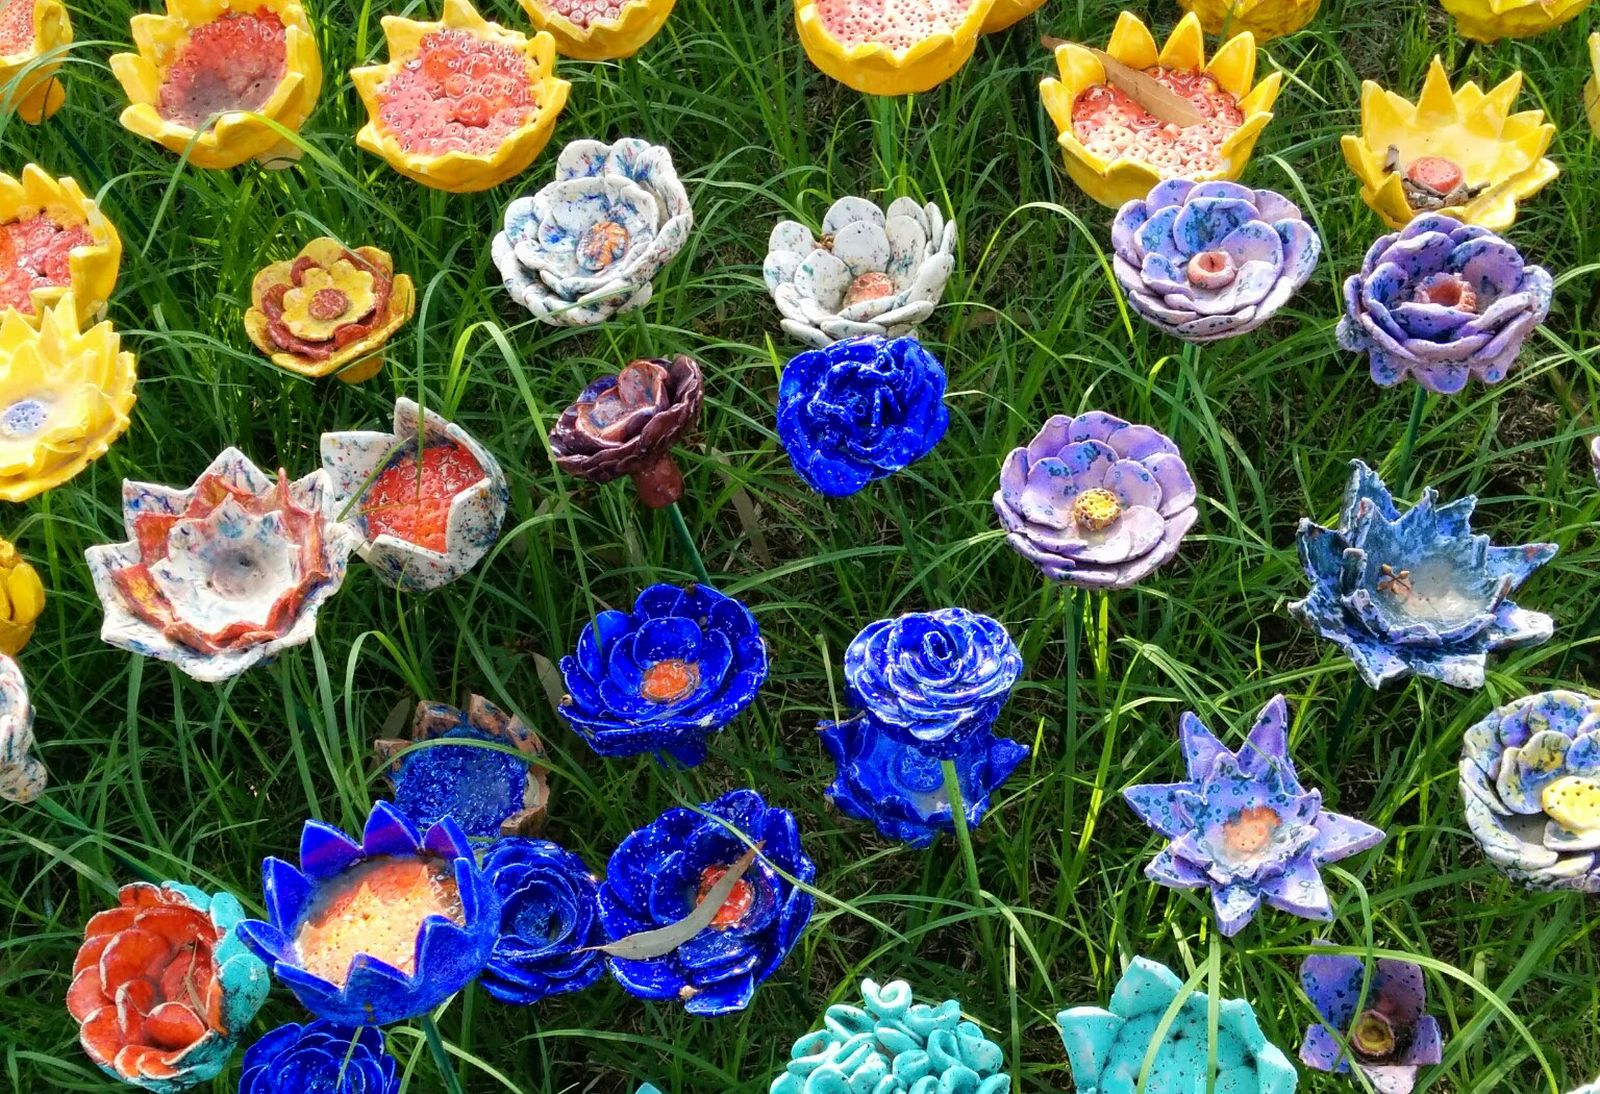 Ceramic flower garden at the Eretz Israel Museum. Photo by Viva Sarah Press